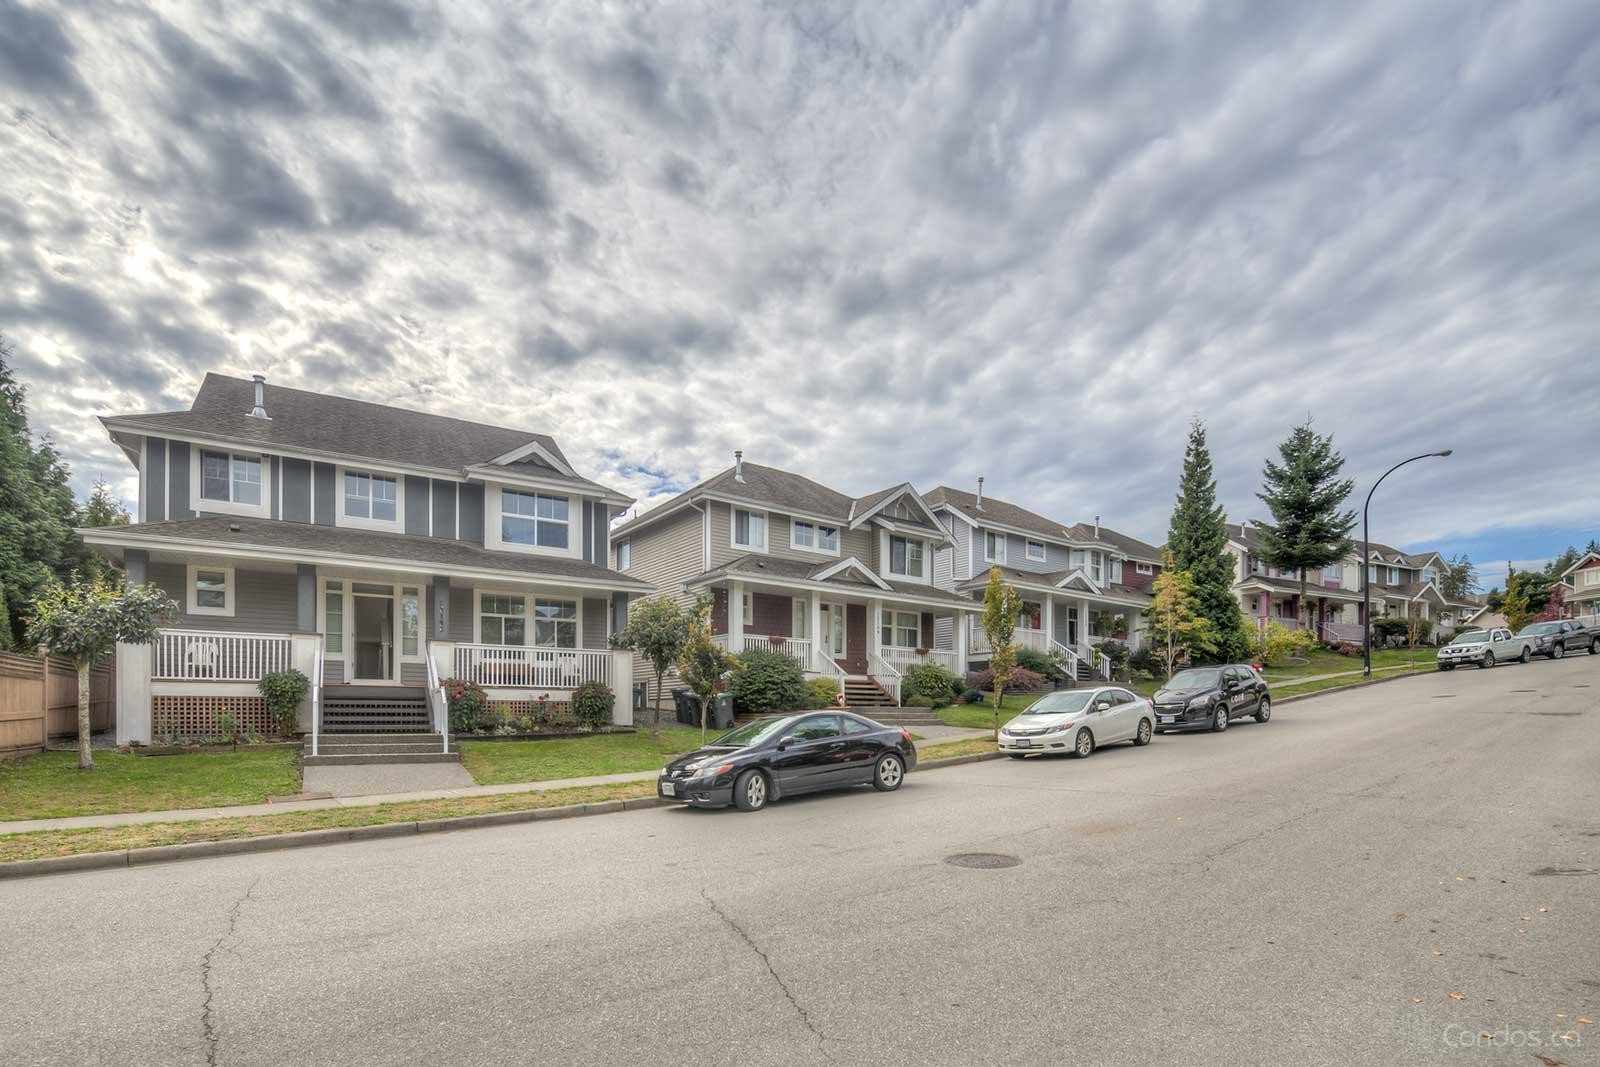 St. James Gate at 15192 62 Ave, Surrey 0